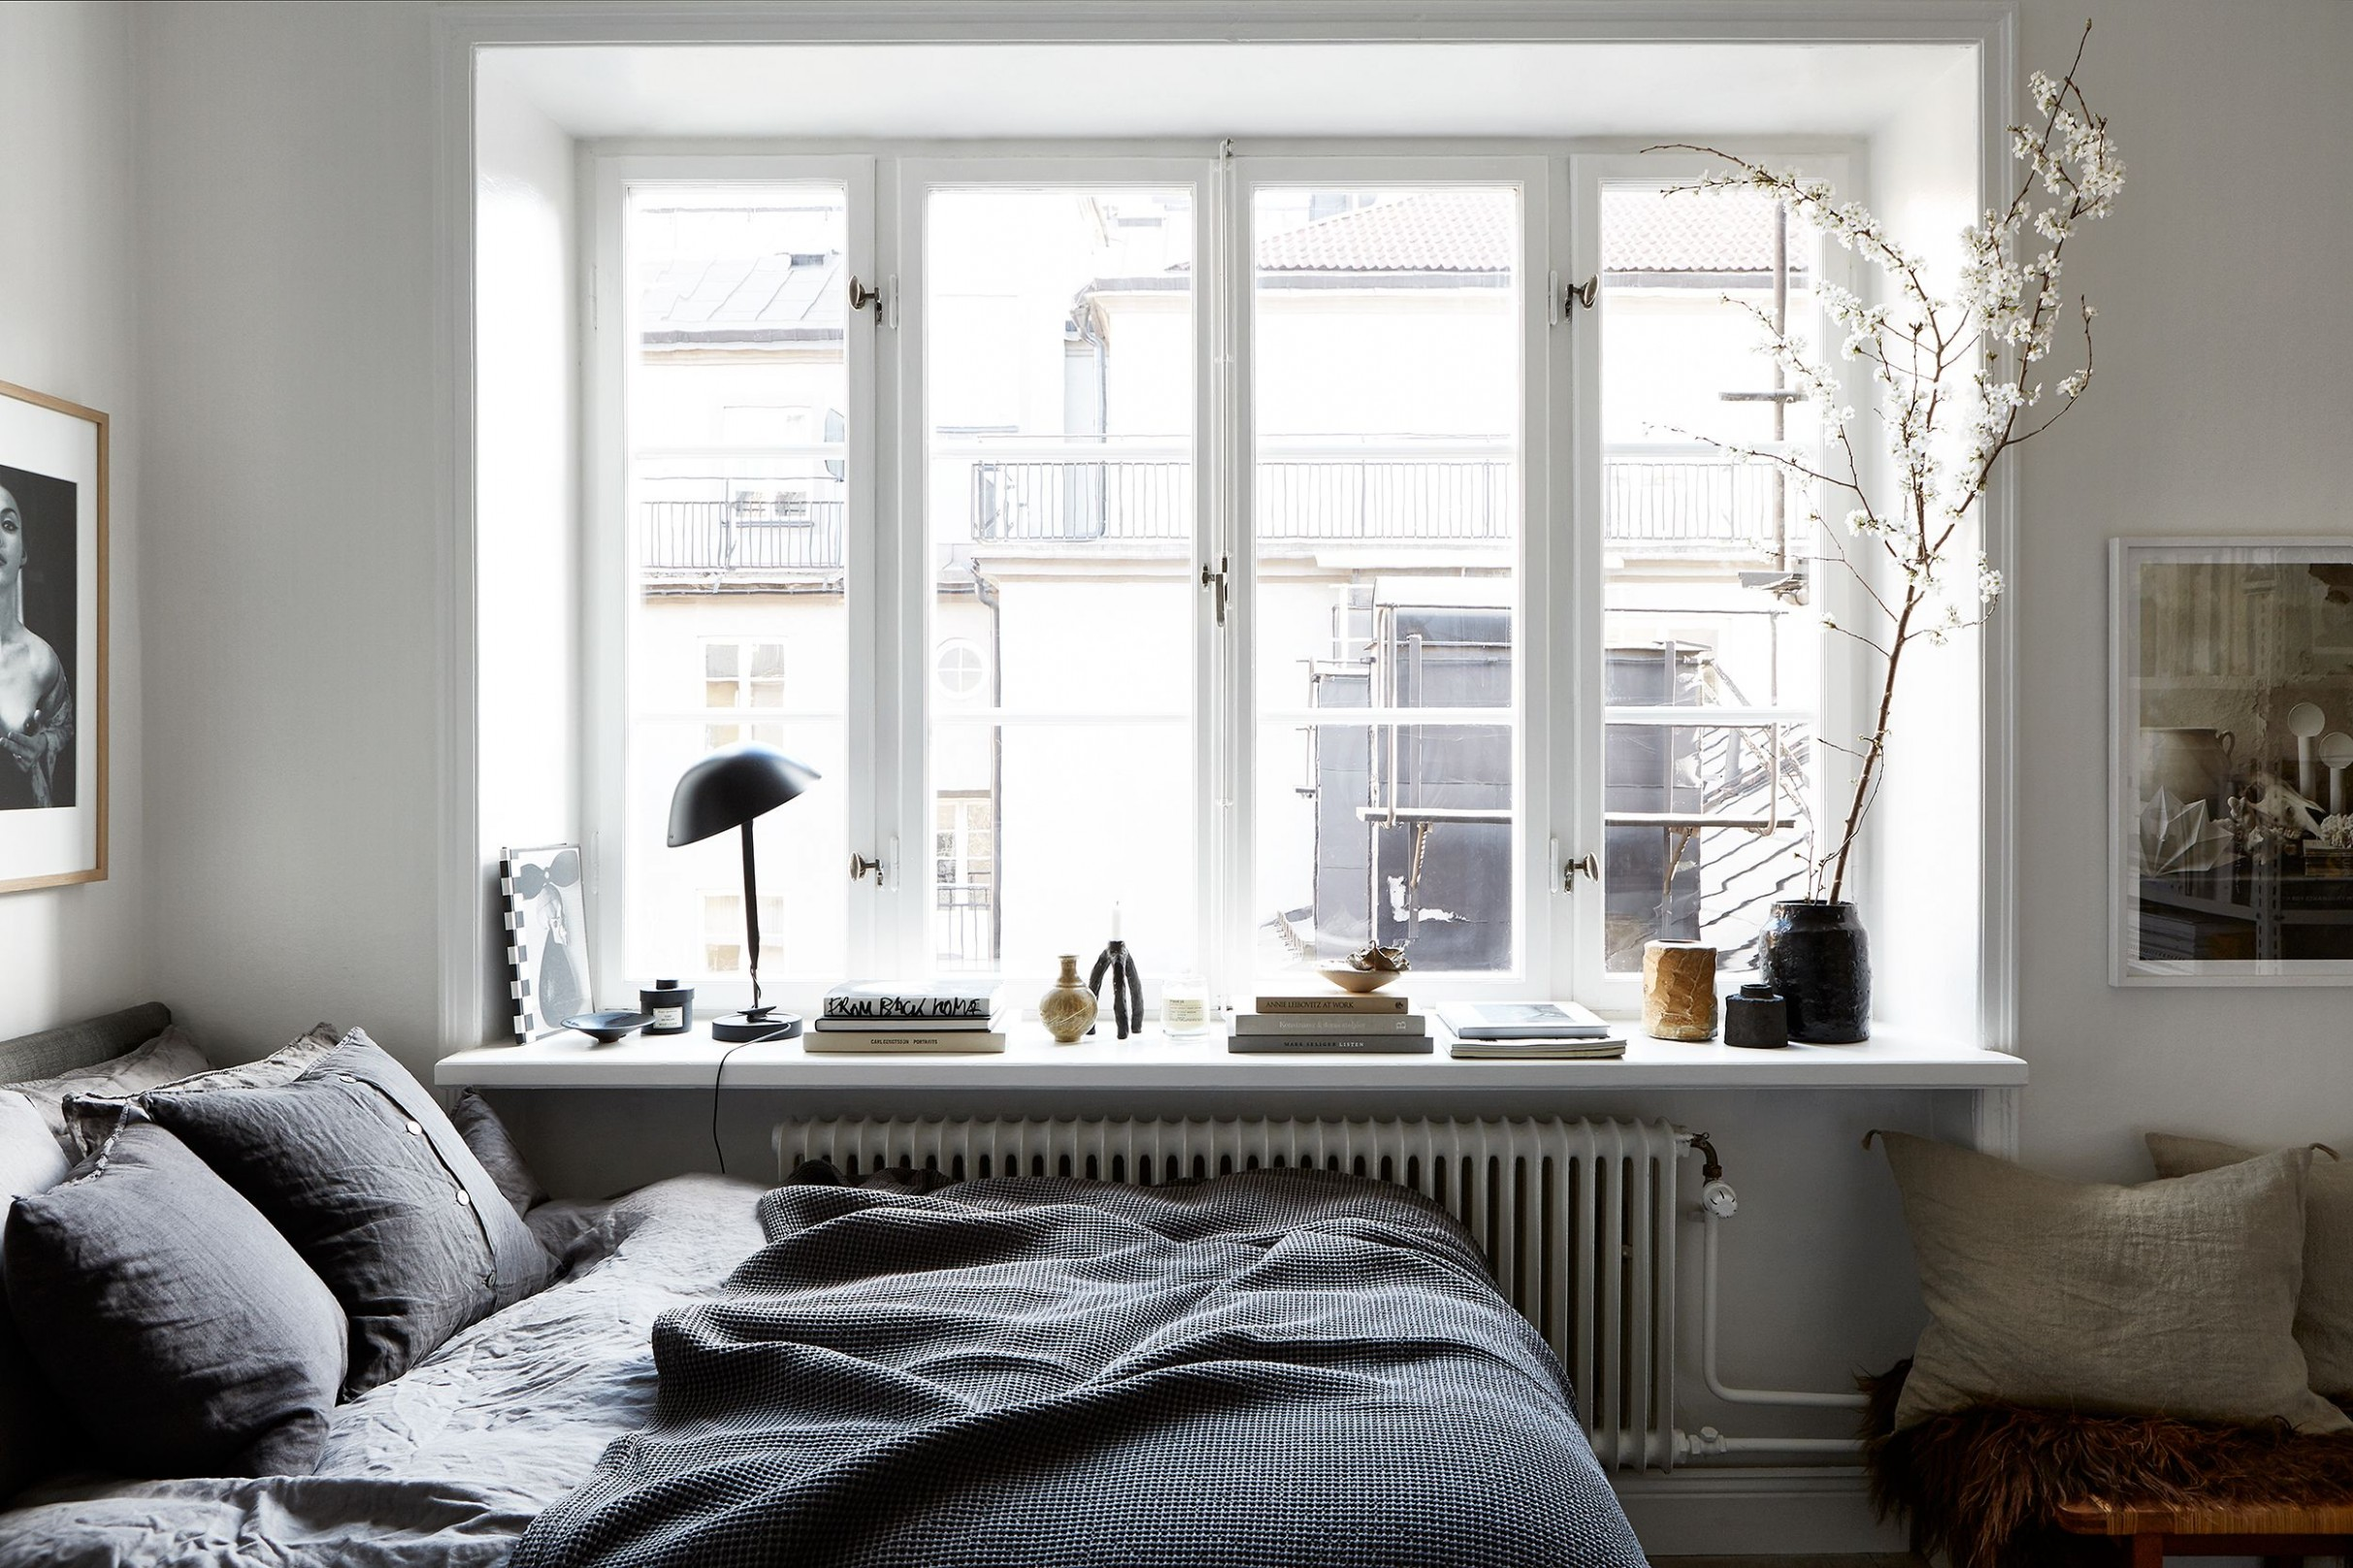 10 Small Bedroom Design Ideas - How to Decorate a Small Bedroom - Window Ideas Bedroom